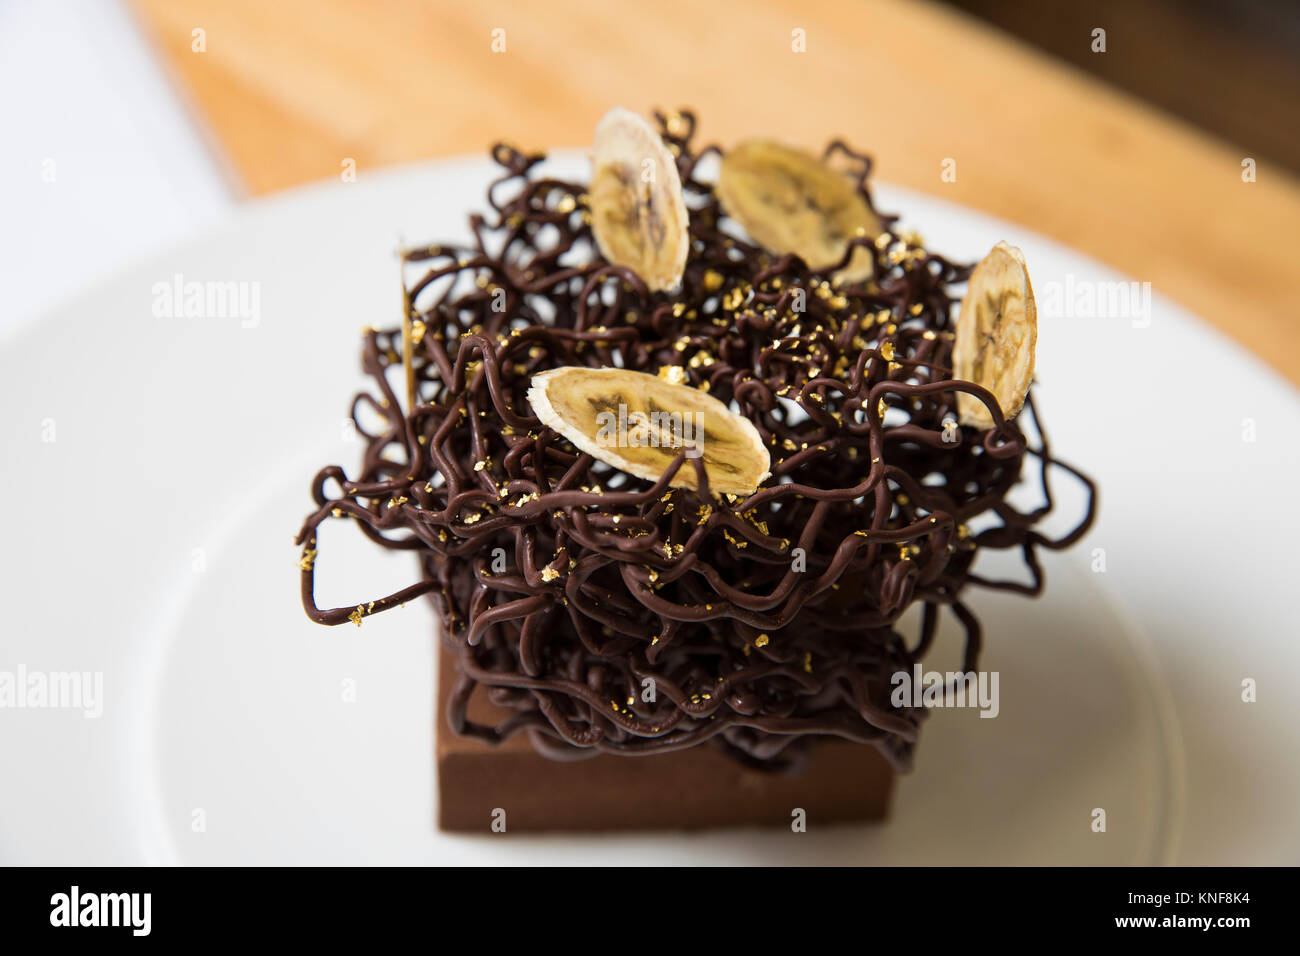 Tranches De Banane Séchée Et Chocolat Décoration Gâteau Nid On Cake Photo Stock Alamy